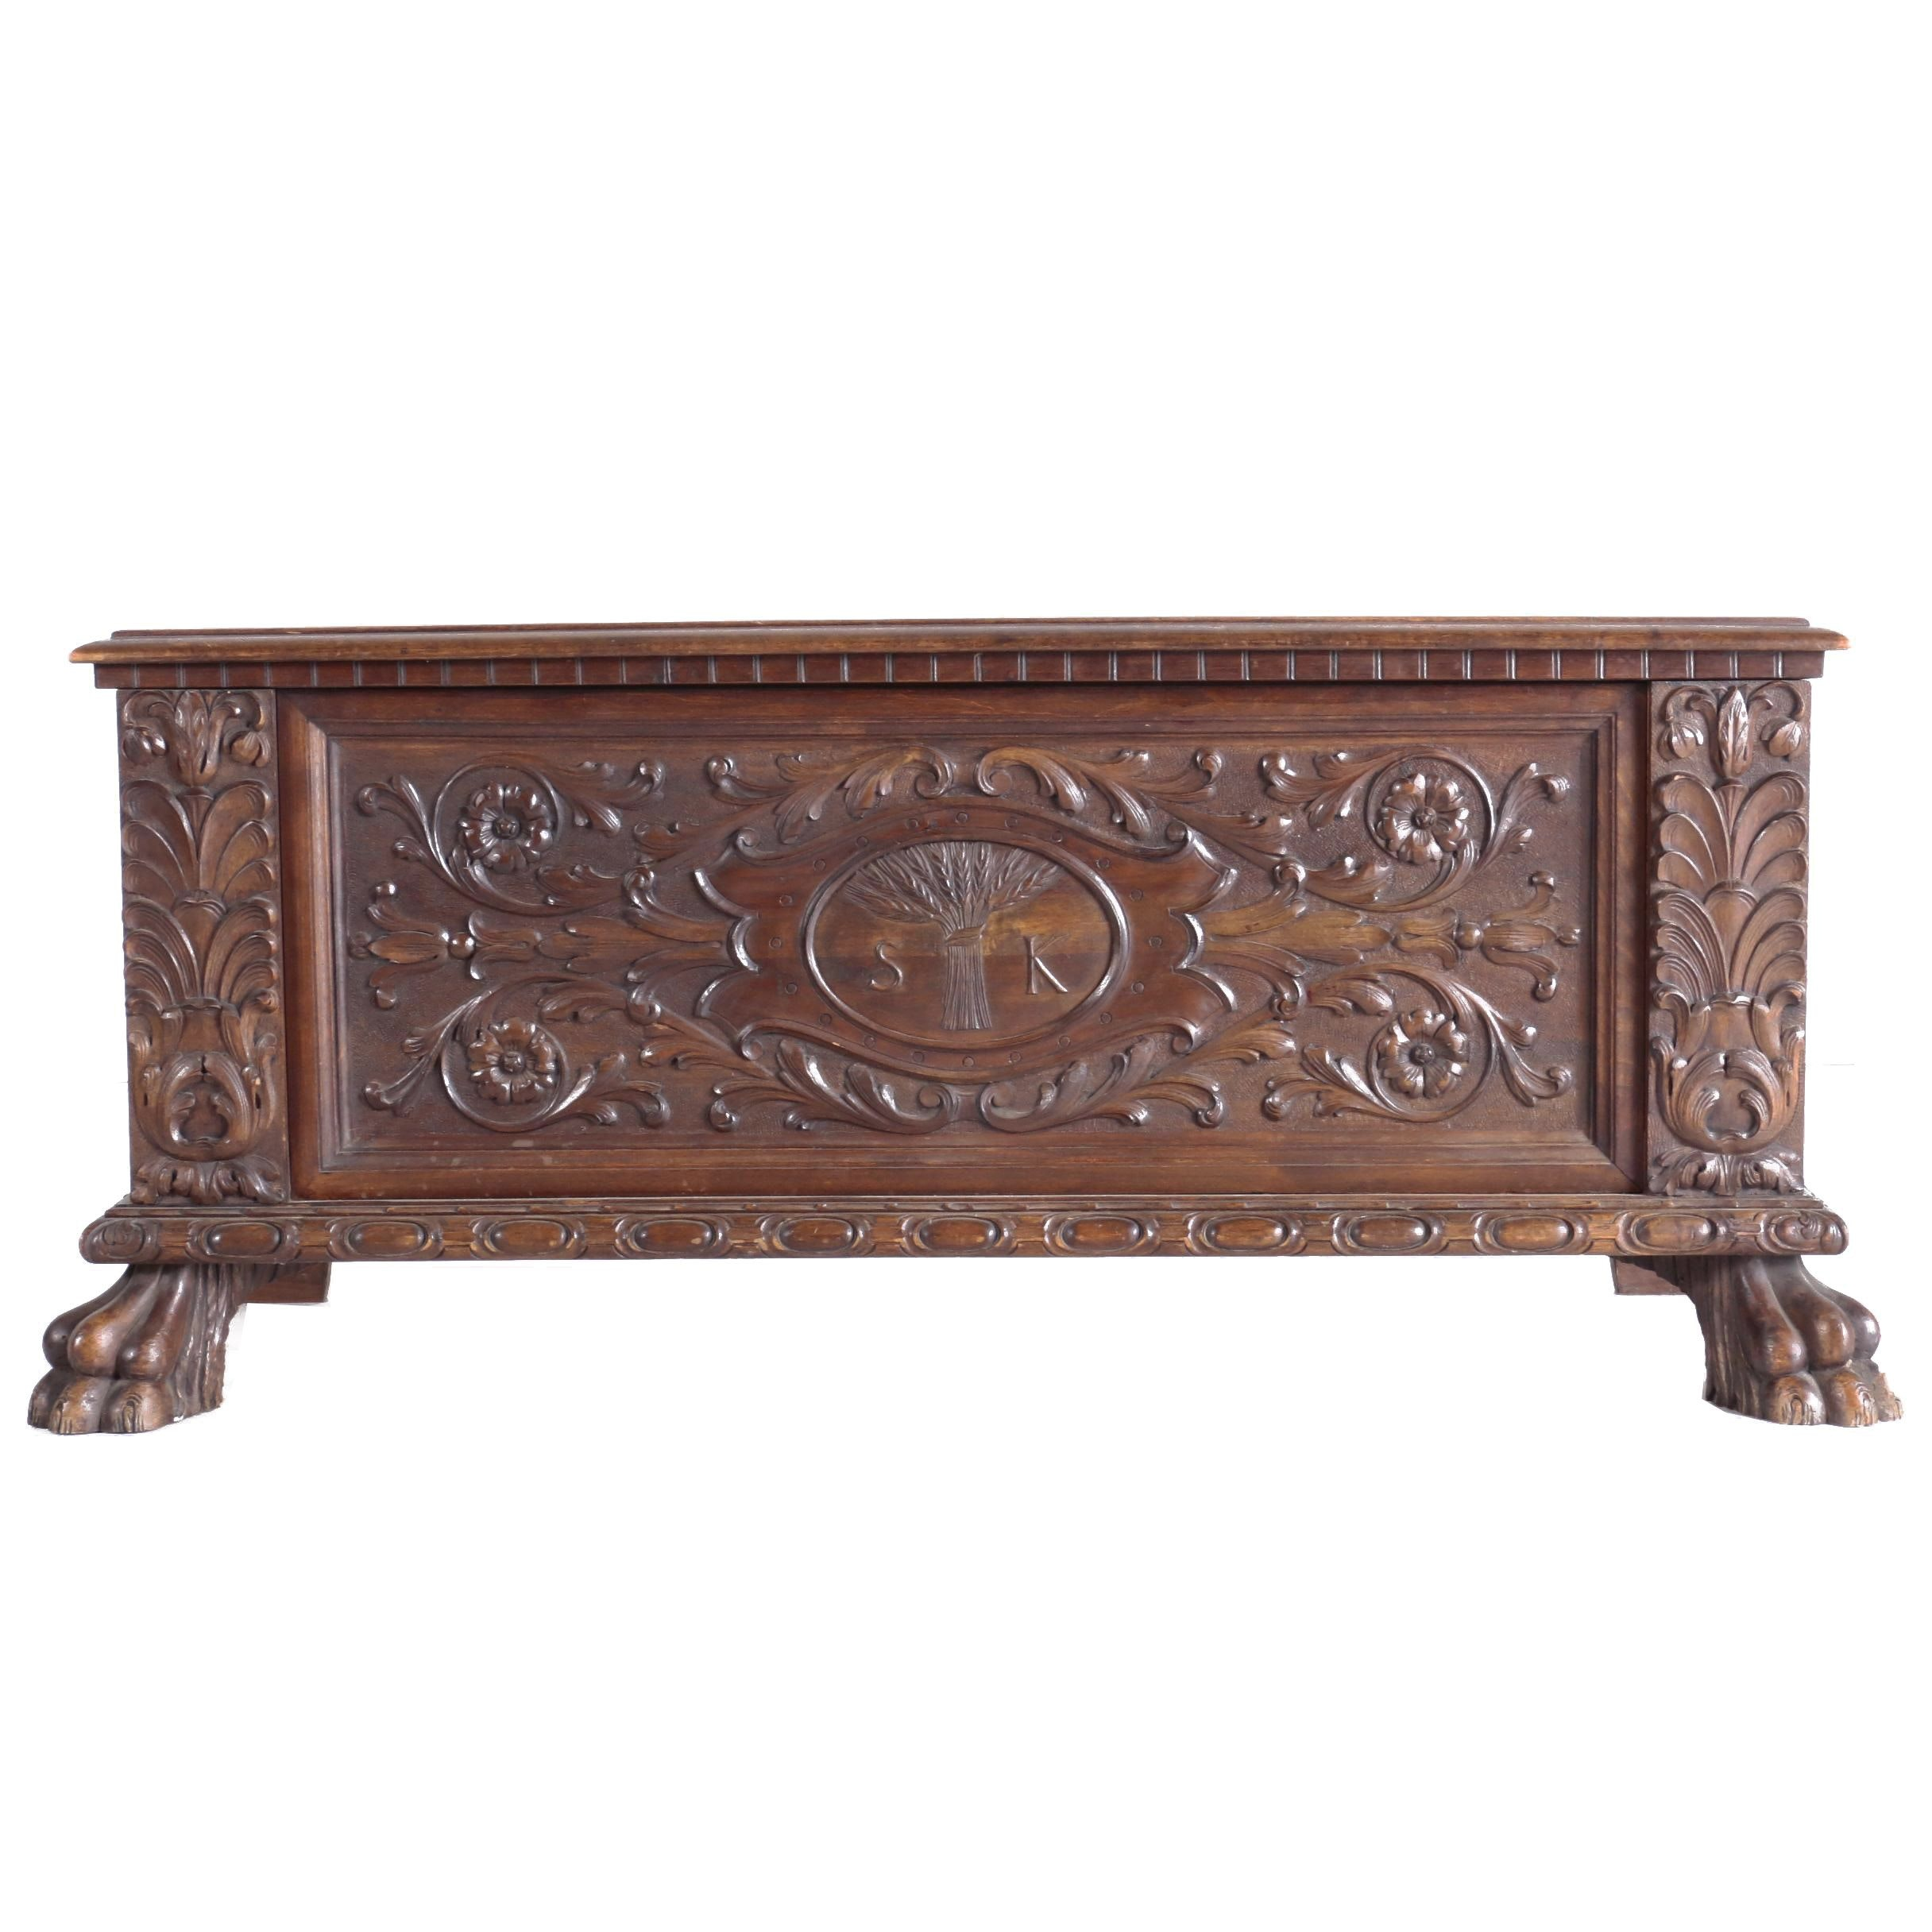 Renaissance Revival Walnut Marriage Chest, Late 19th/Early 20th Century